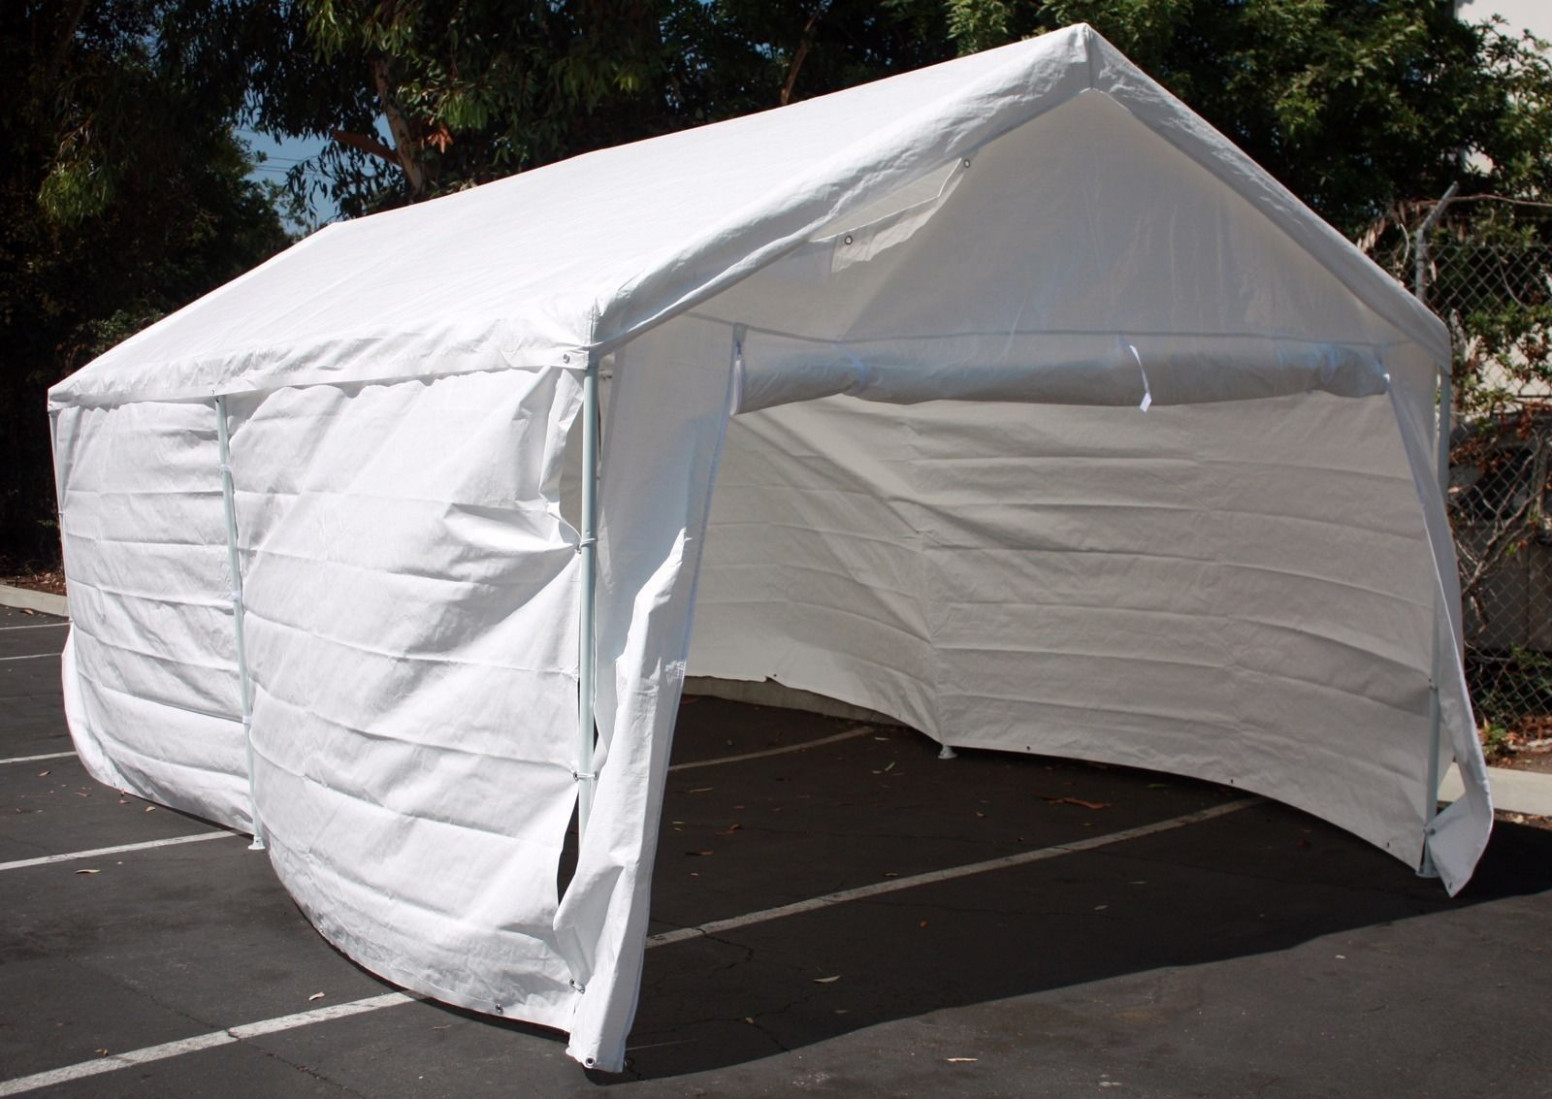 11'x11' Complete Set Garage Carport W/Side Wall & Frames Car Shelter Canopy Tent Carport Canopy With Sides